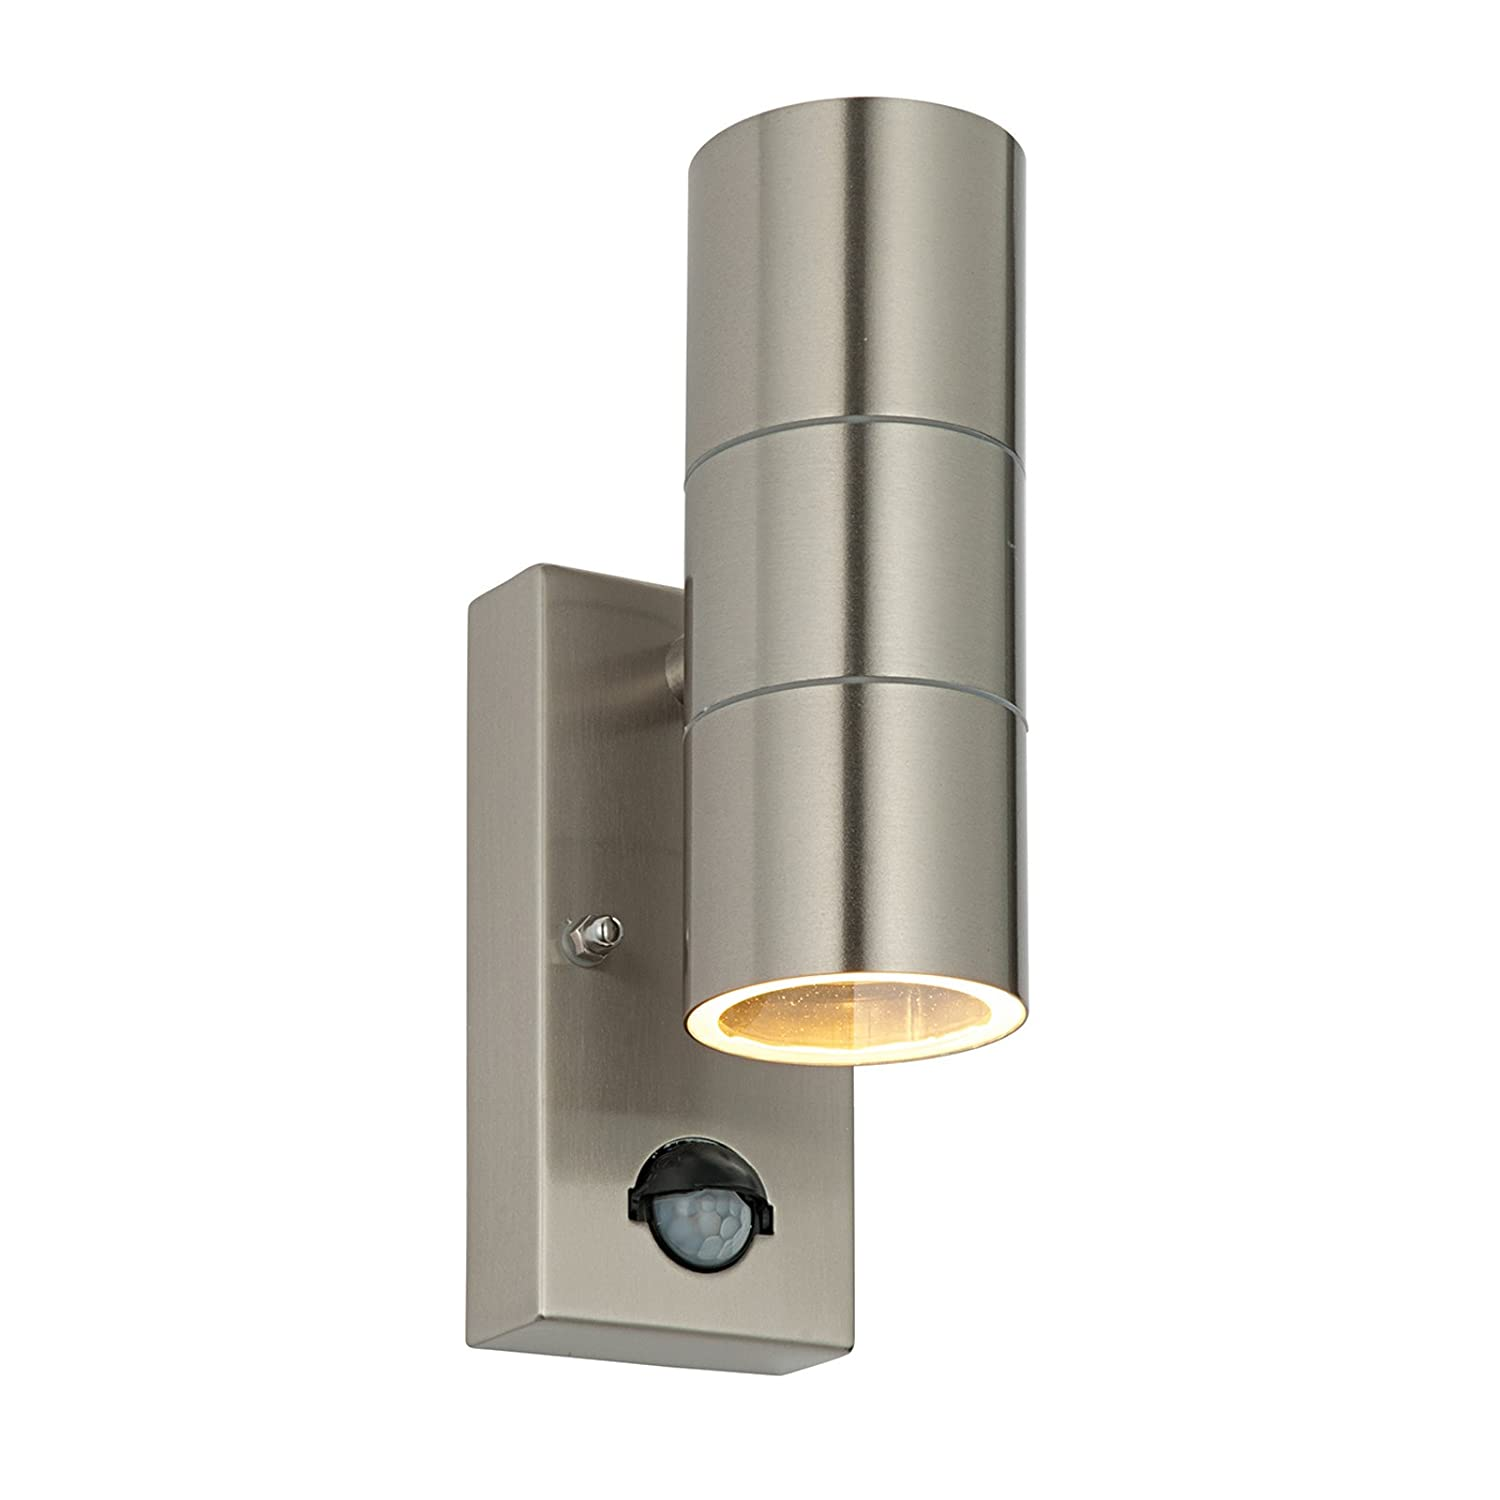 Saxby palin 35w brushed stainless steel pir outdoor garden ip44 saxby palin 35w brushed stainless steel pir outdoor garden ip44 motion sensor steel up down wall light amazon garden outdoors workwithnaturefo